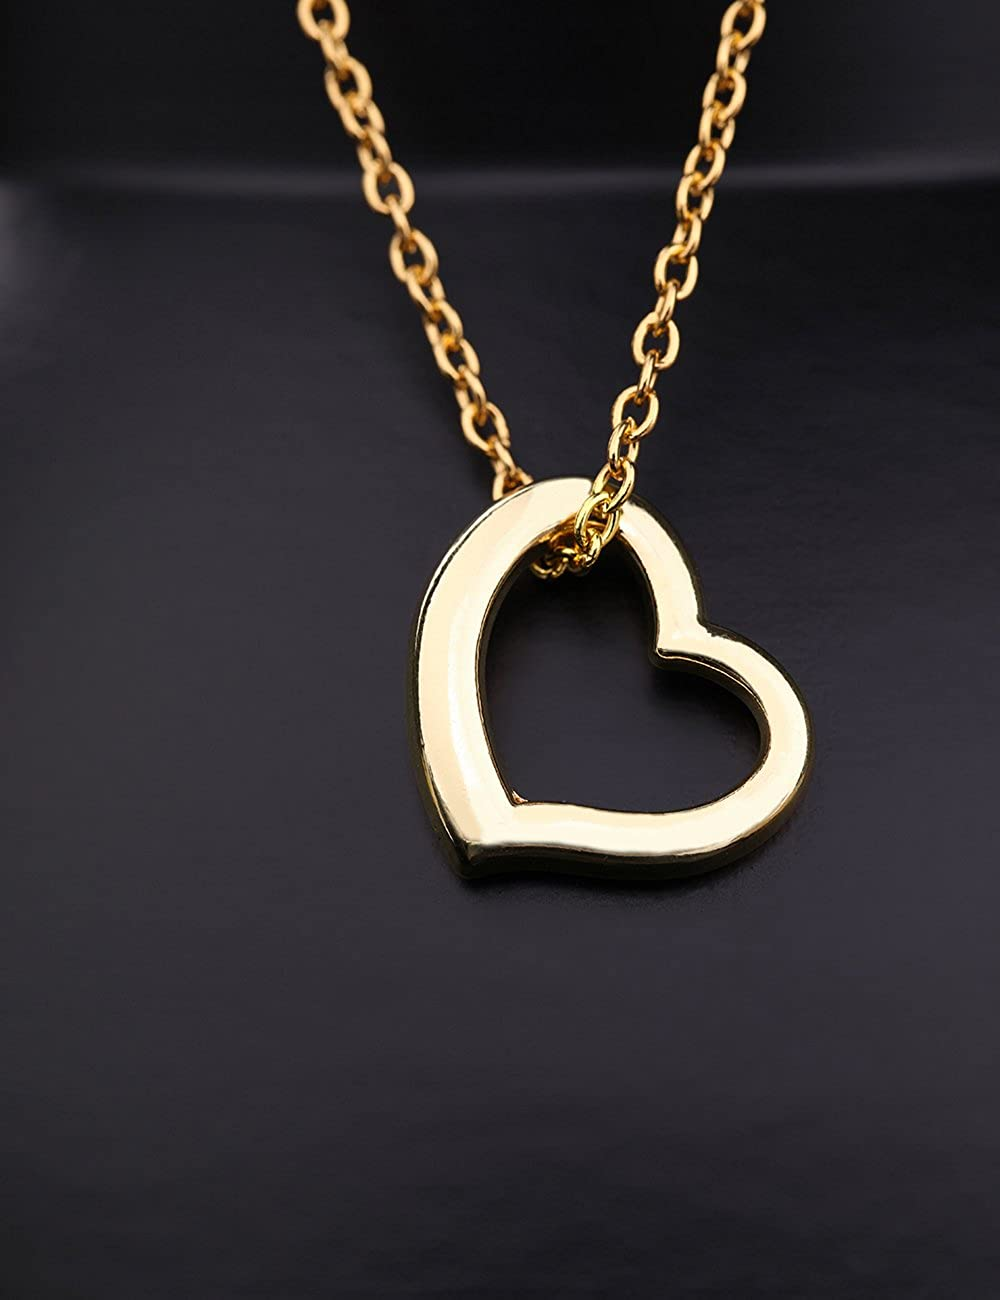 SwaraEcom 14K Yellow Gold Plated Cubic Zirconia Oval Shape Pendant for Womens Fashion Jewelry